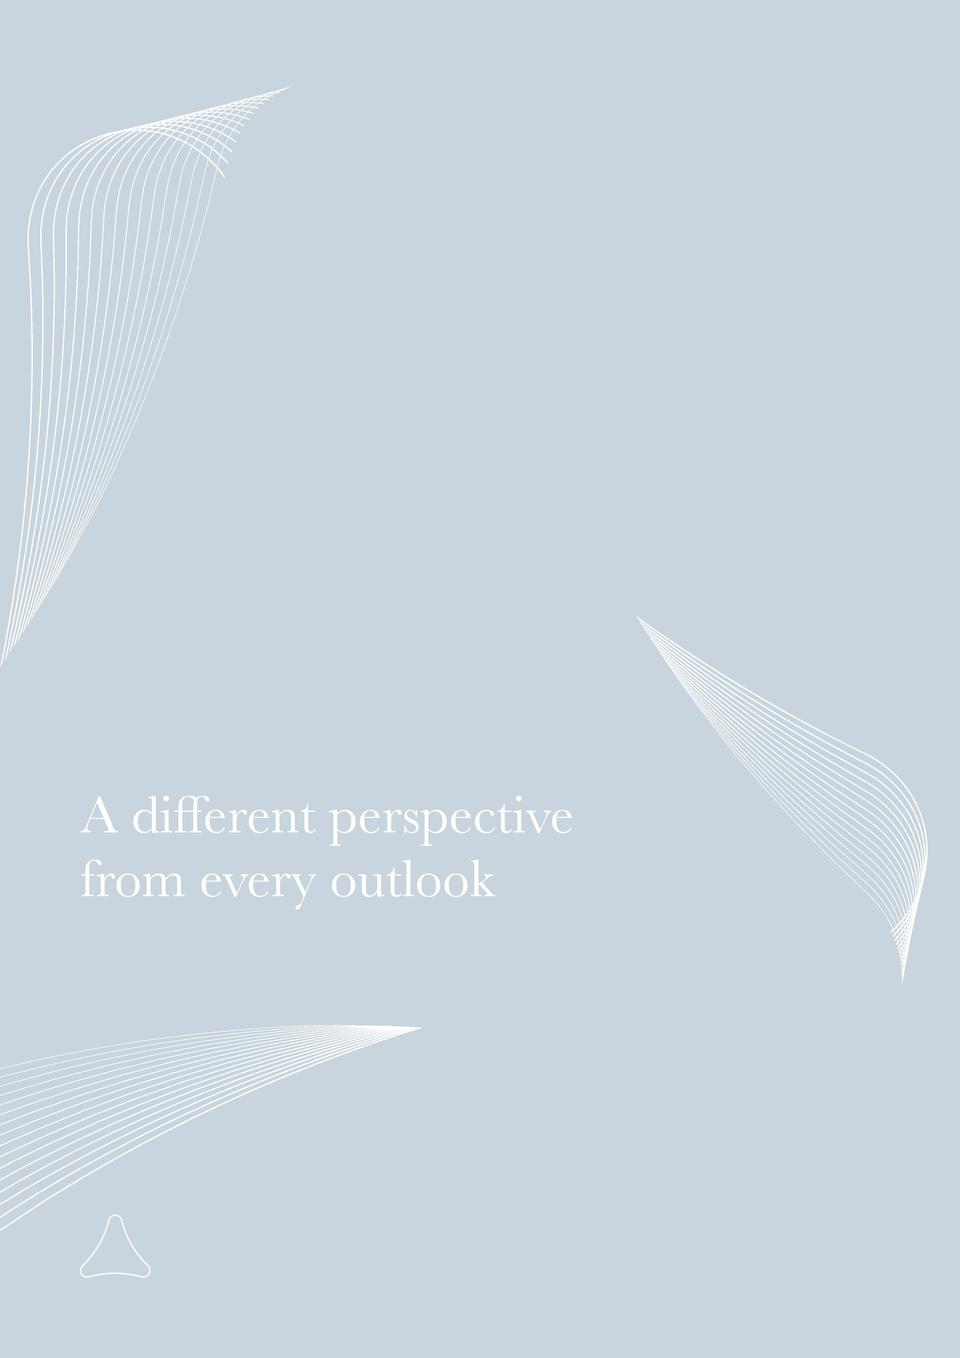 A different perspective from every outlook